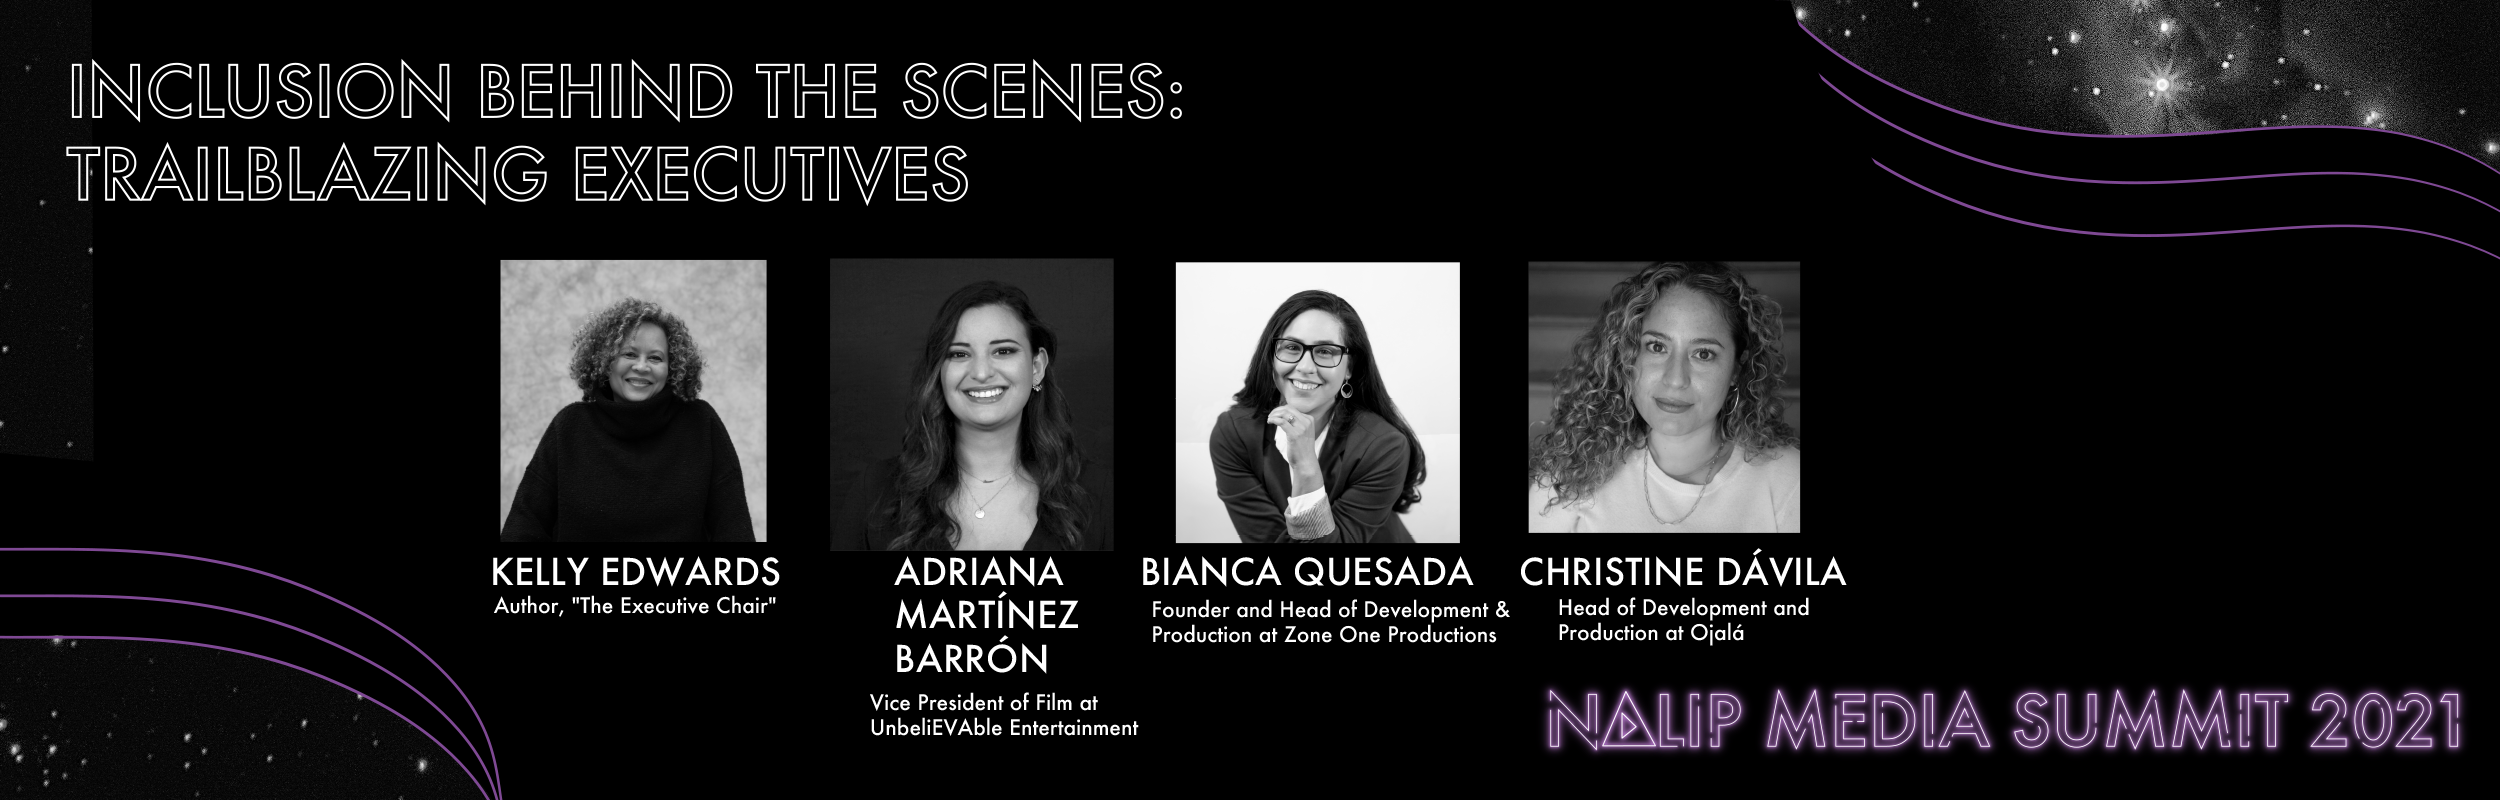 How Film & TV Executives can Strengthen Latinx-Led Stories<